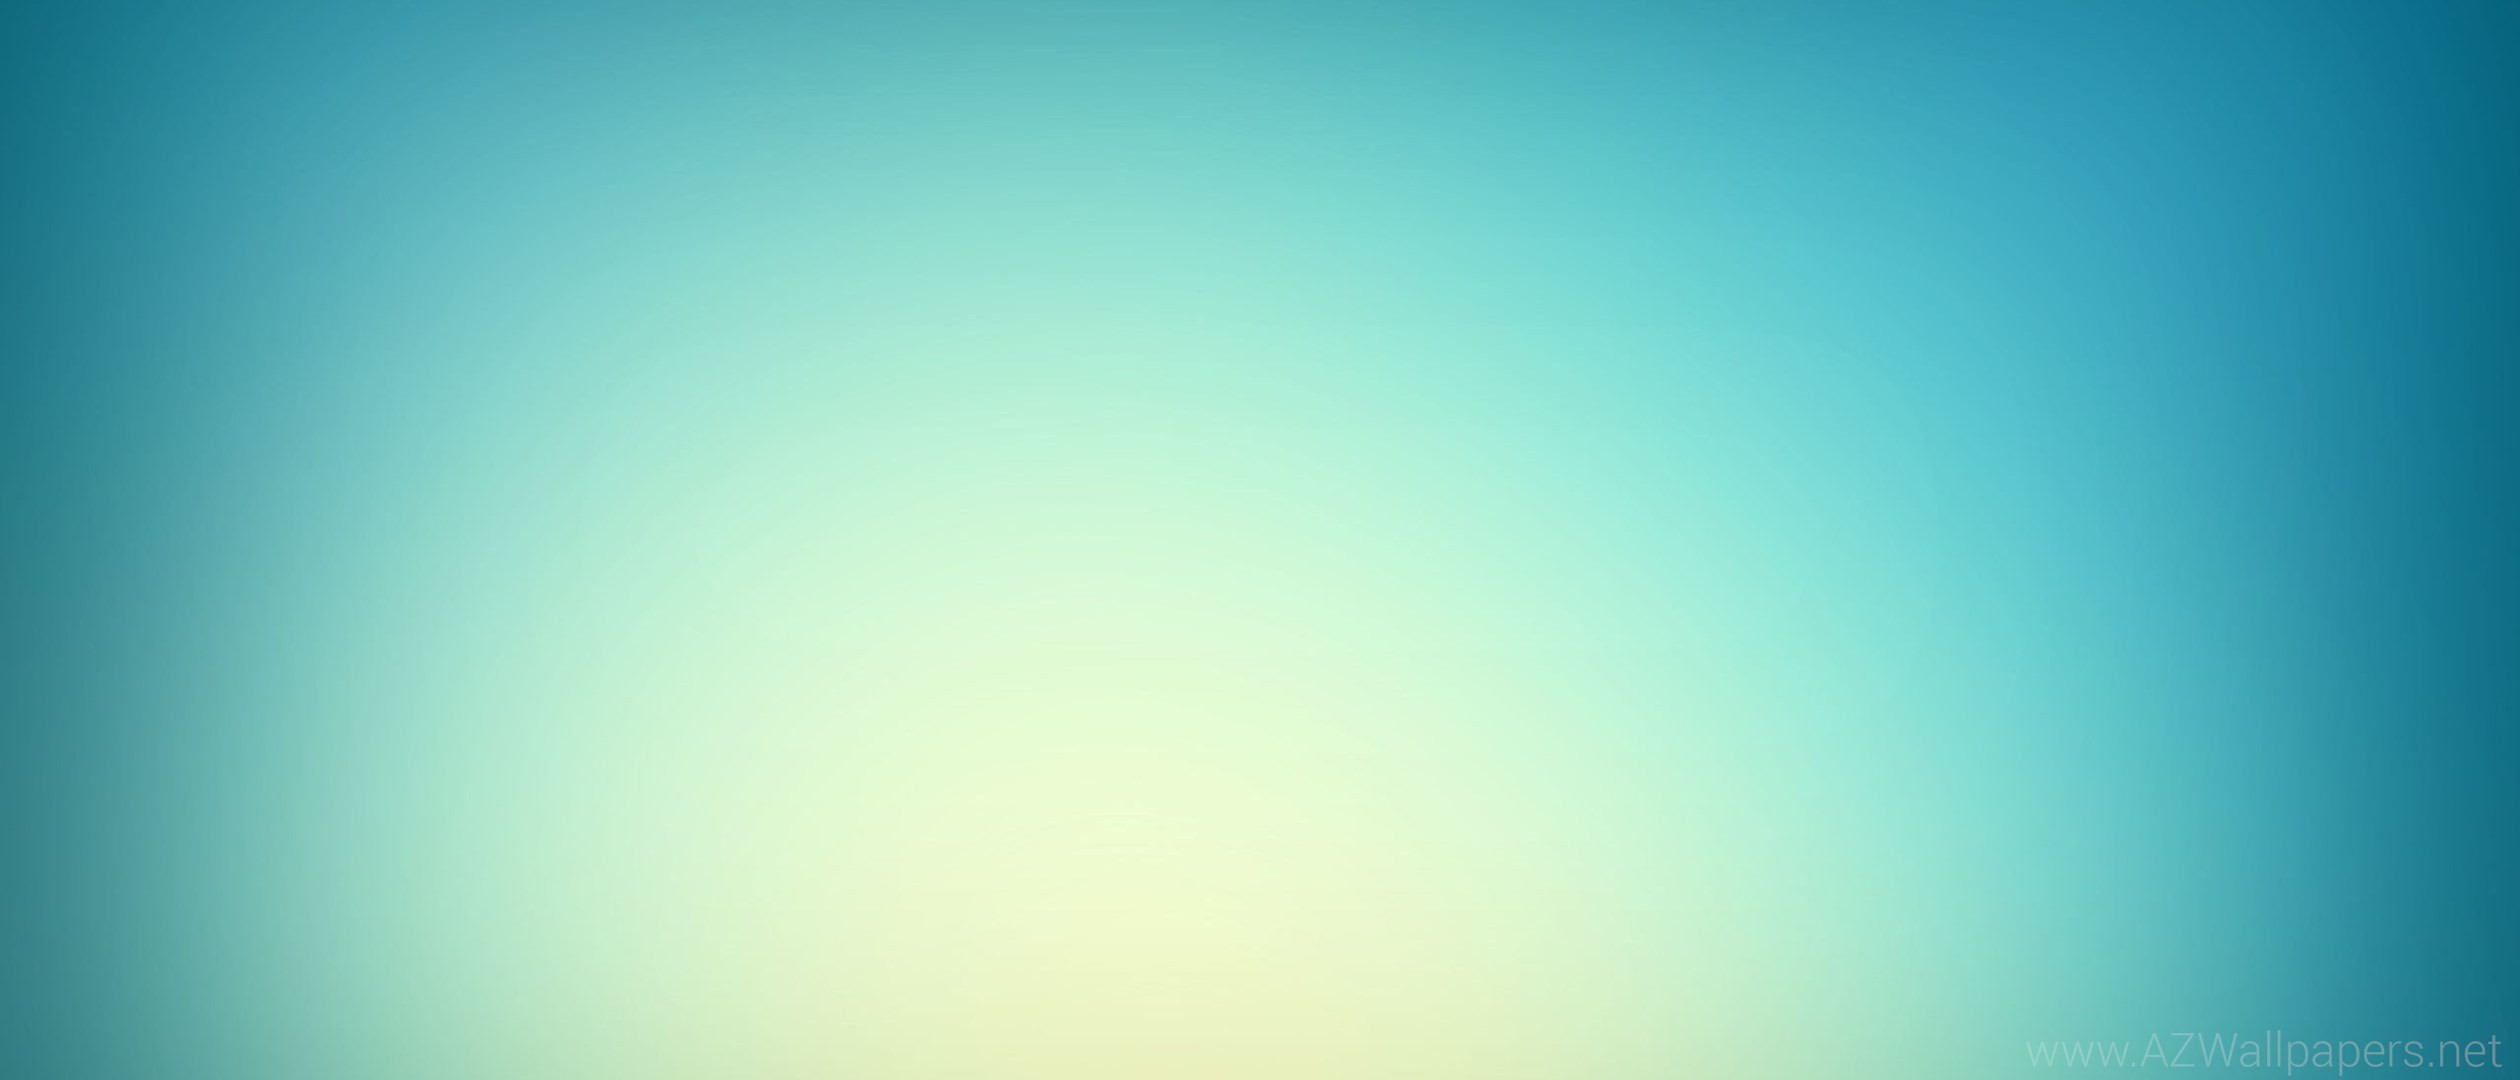 41+ Gradient backgrounds ·① Download free beautiful full ...